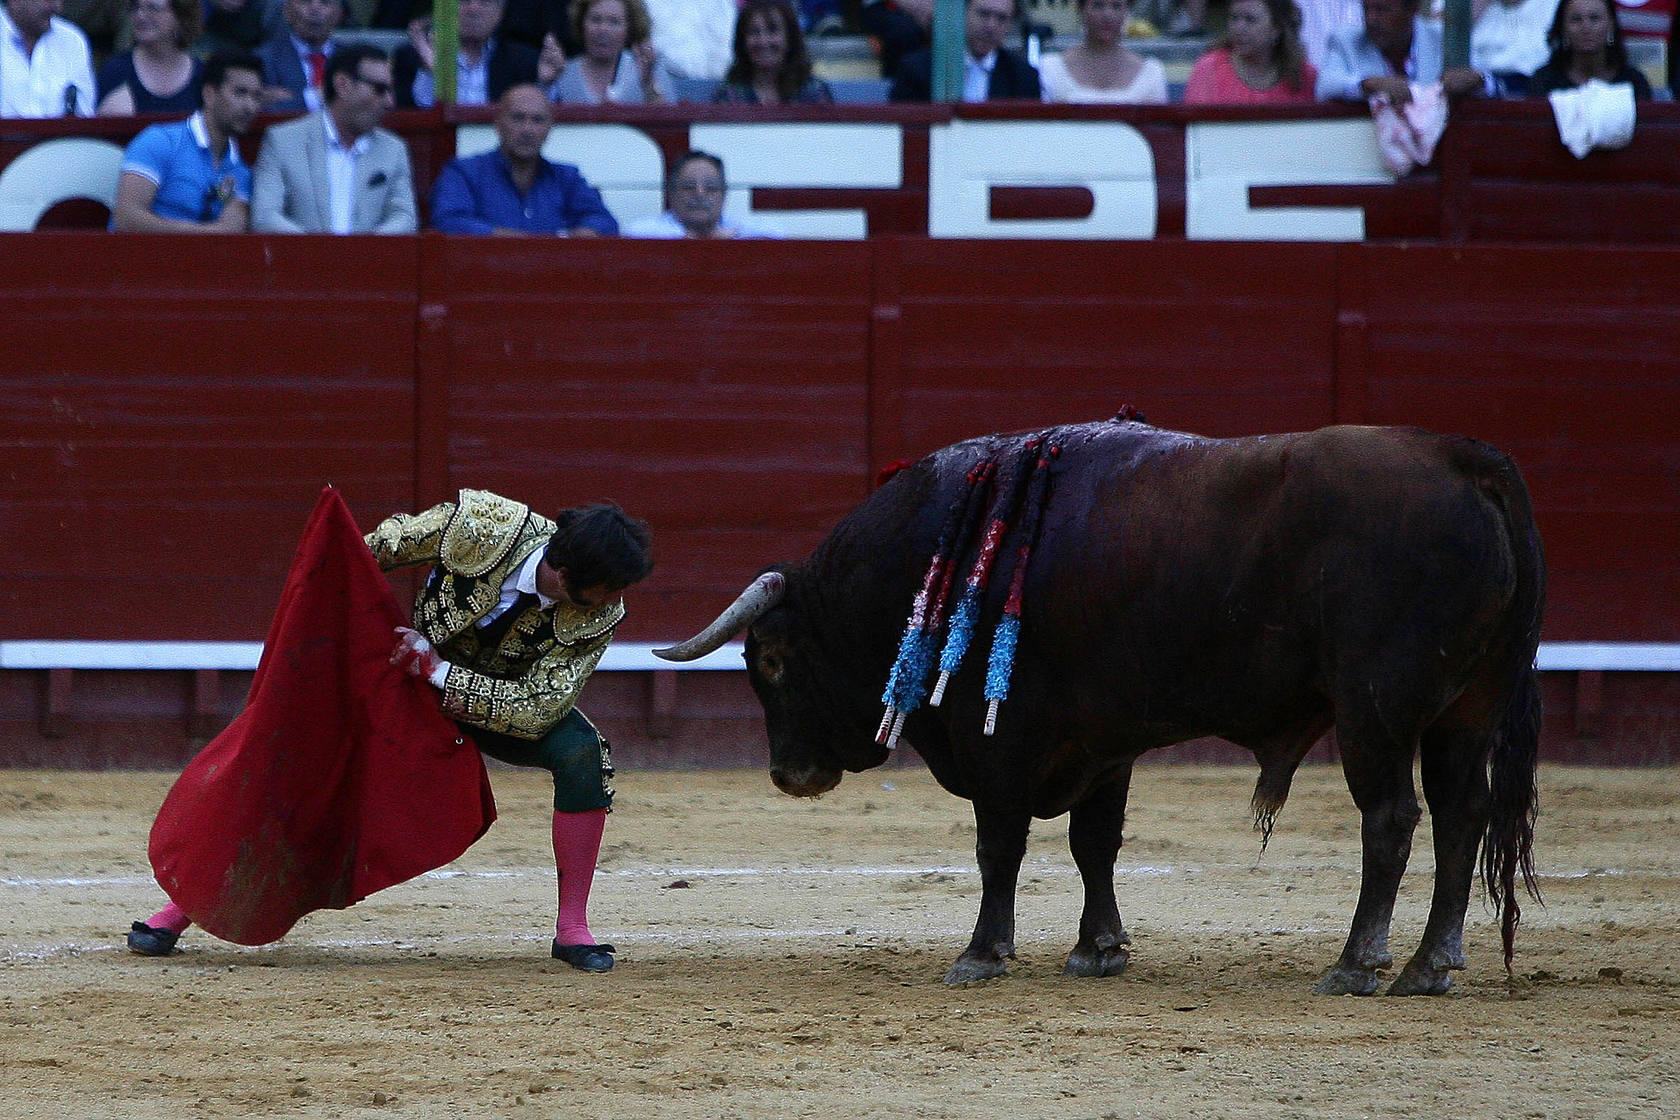 S&aacute;bado de toros en Jerez con Ponce, Padilla y Talavante